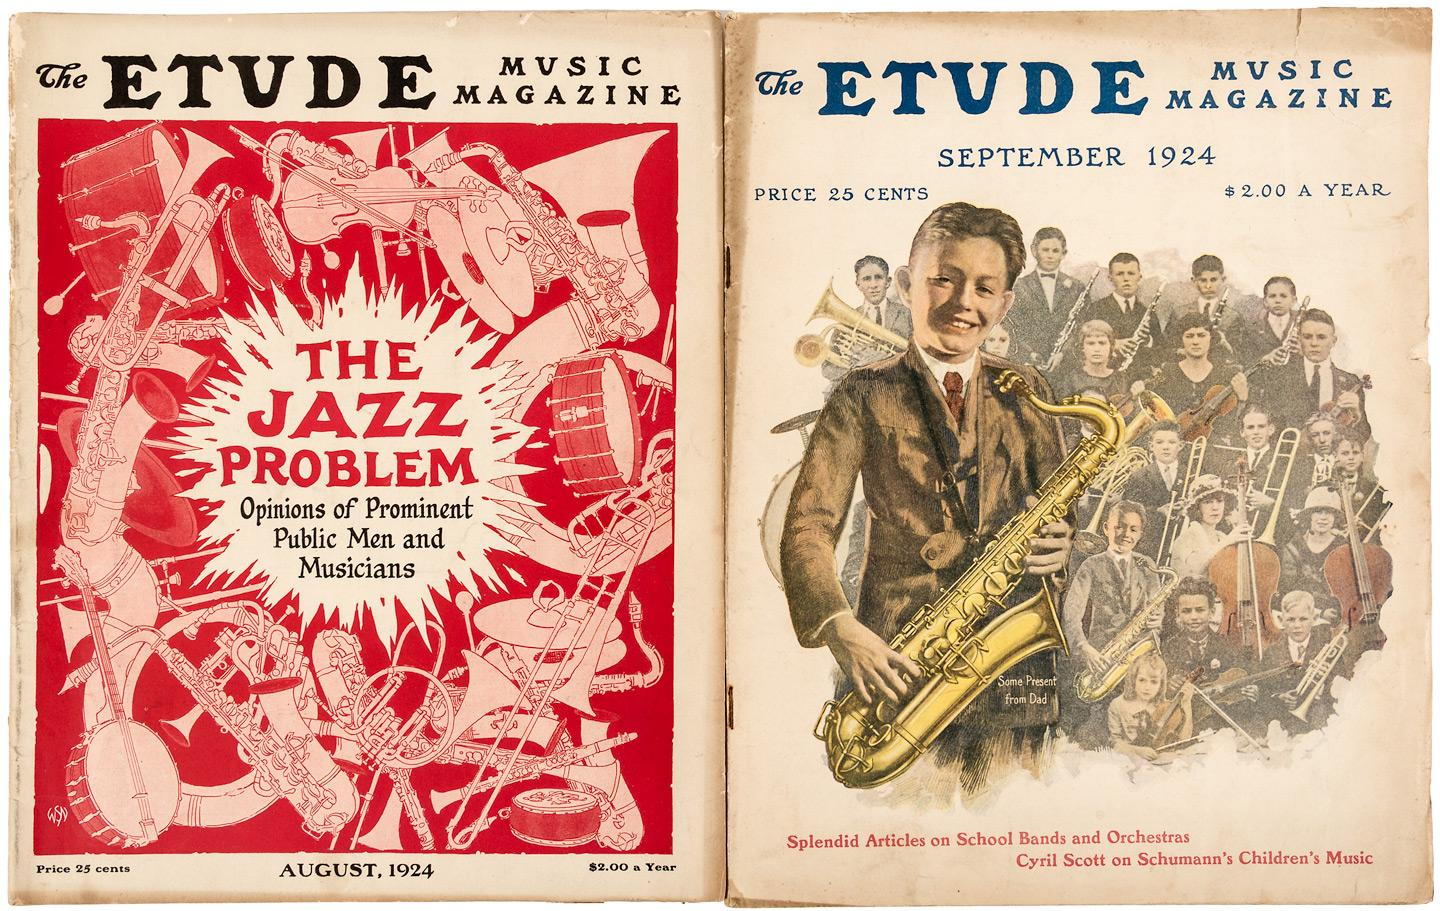 "Jazz Problem"" debated in classical music magazine - two volumes ..."